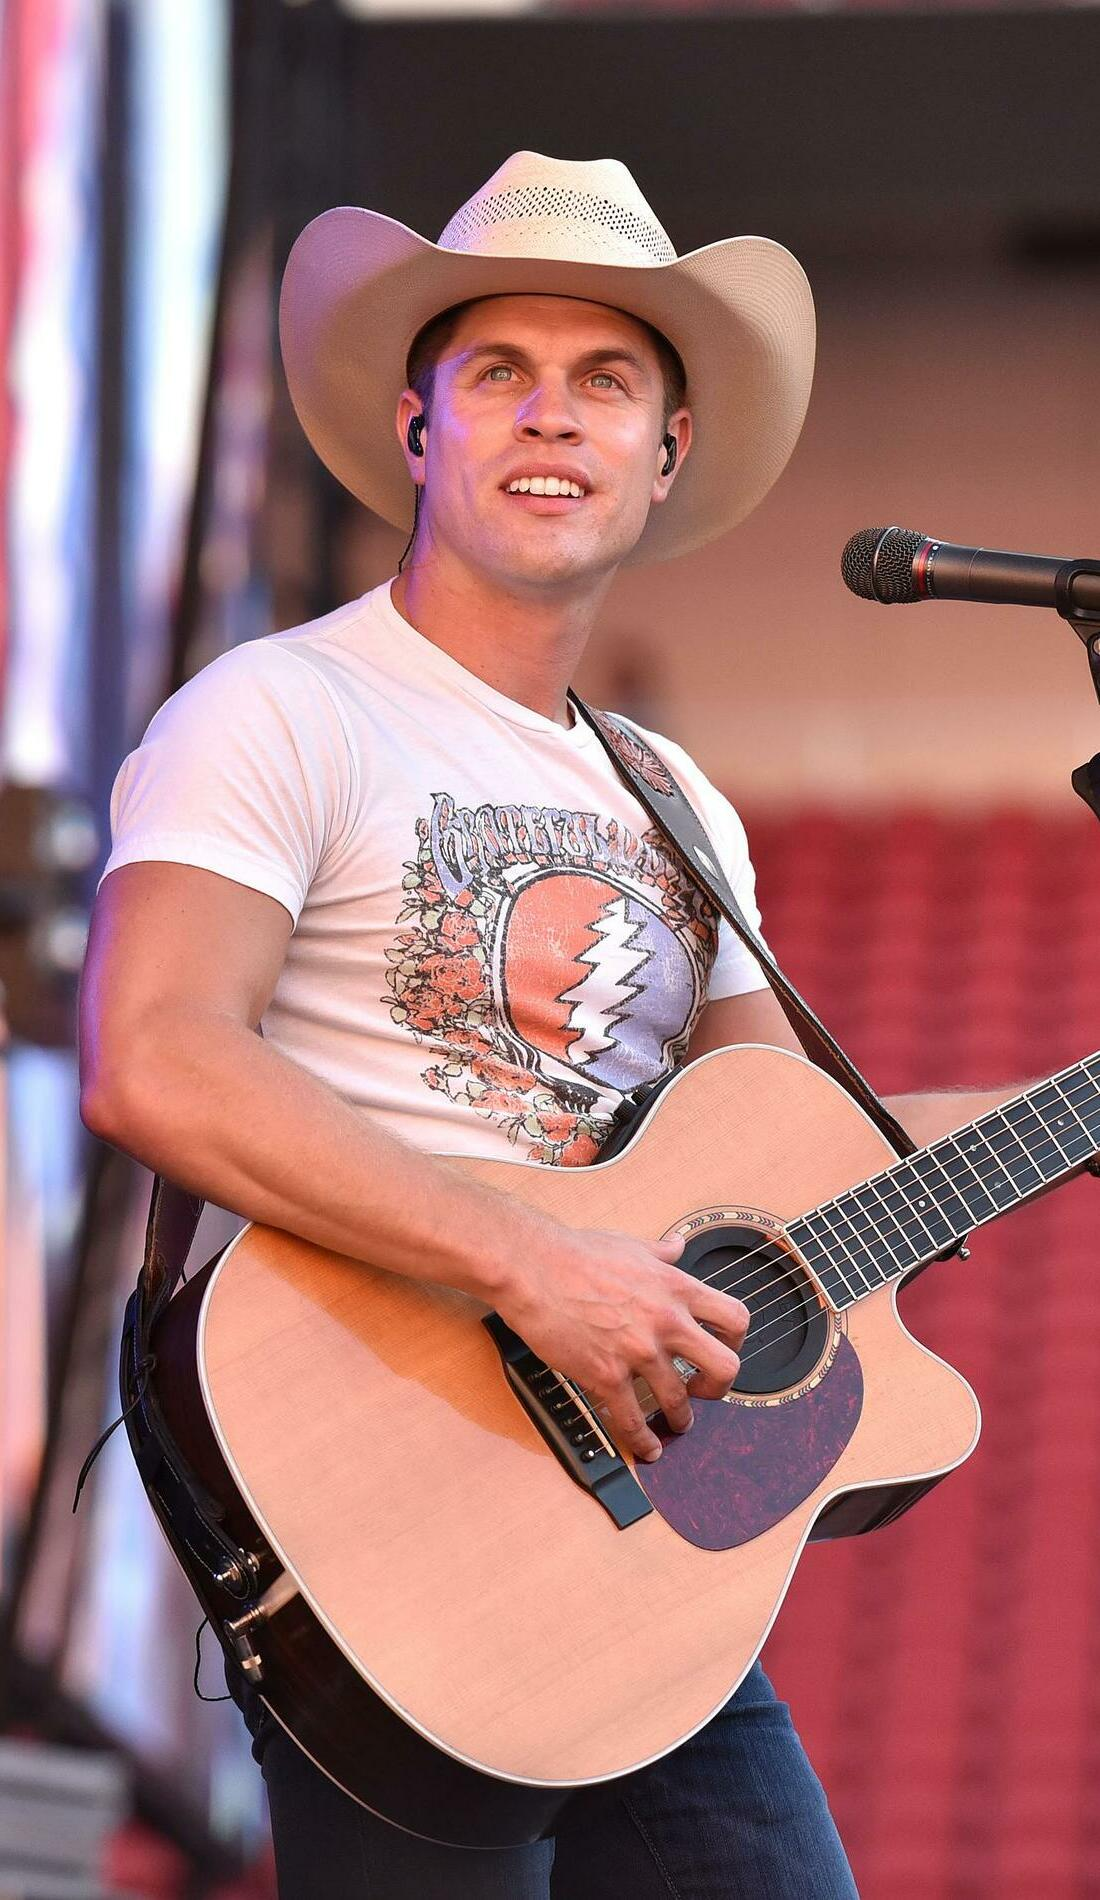 A Dustin Lynch live event